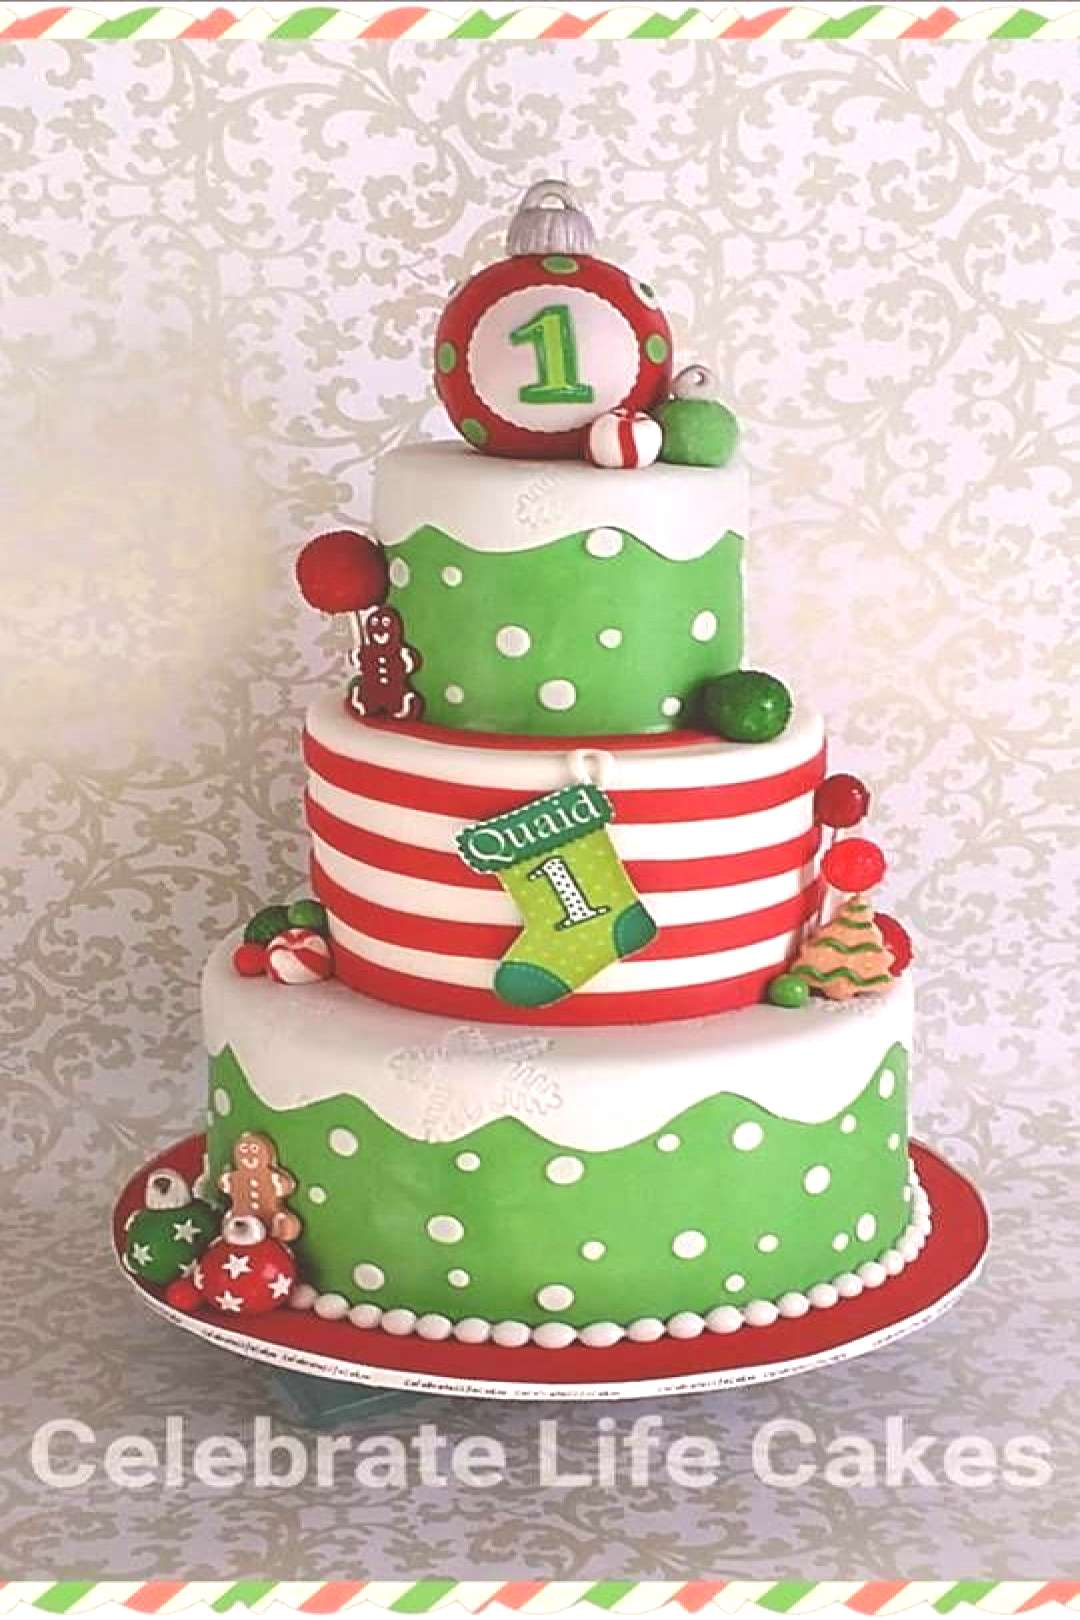 13+ Christmas Party Cakes! If youre looking for inspiration for your Christmas themed party, click